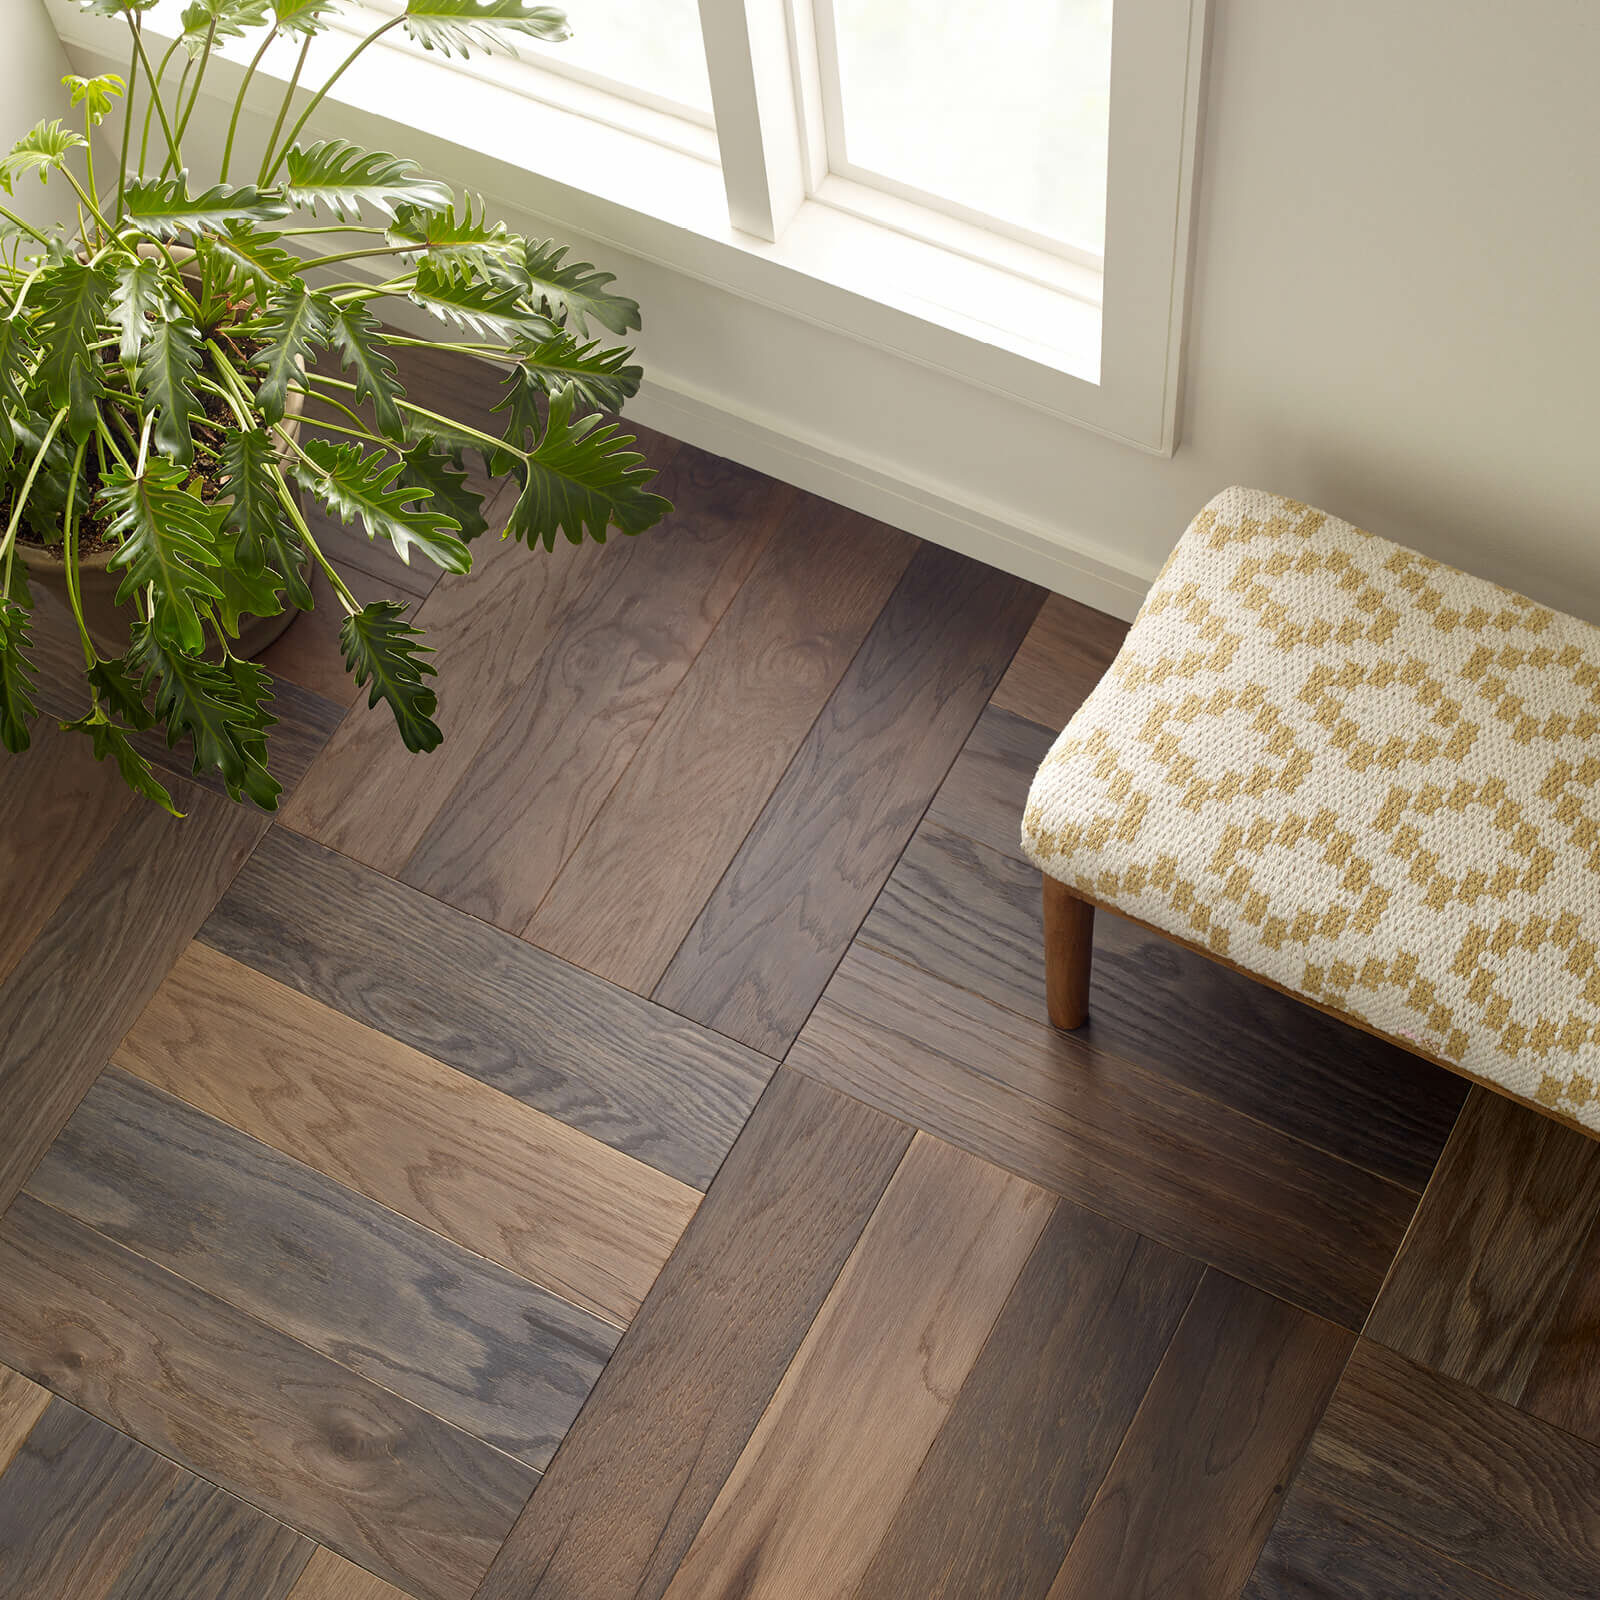 Old World Herringbone Hanover Basketweave flooring | Vic's Carpet & Flooring